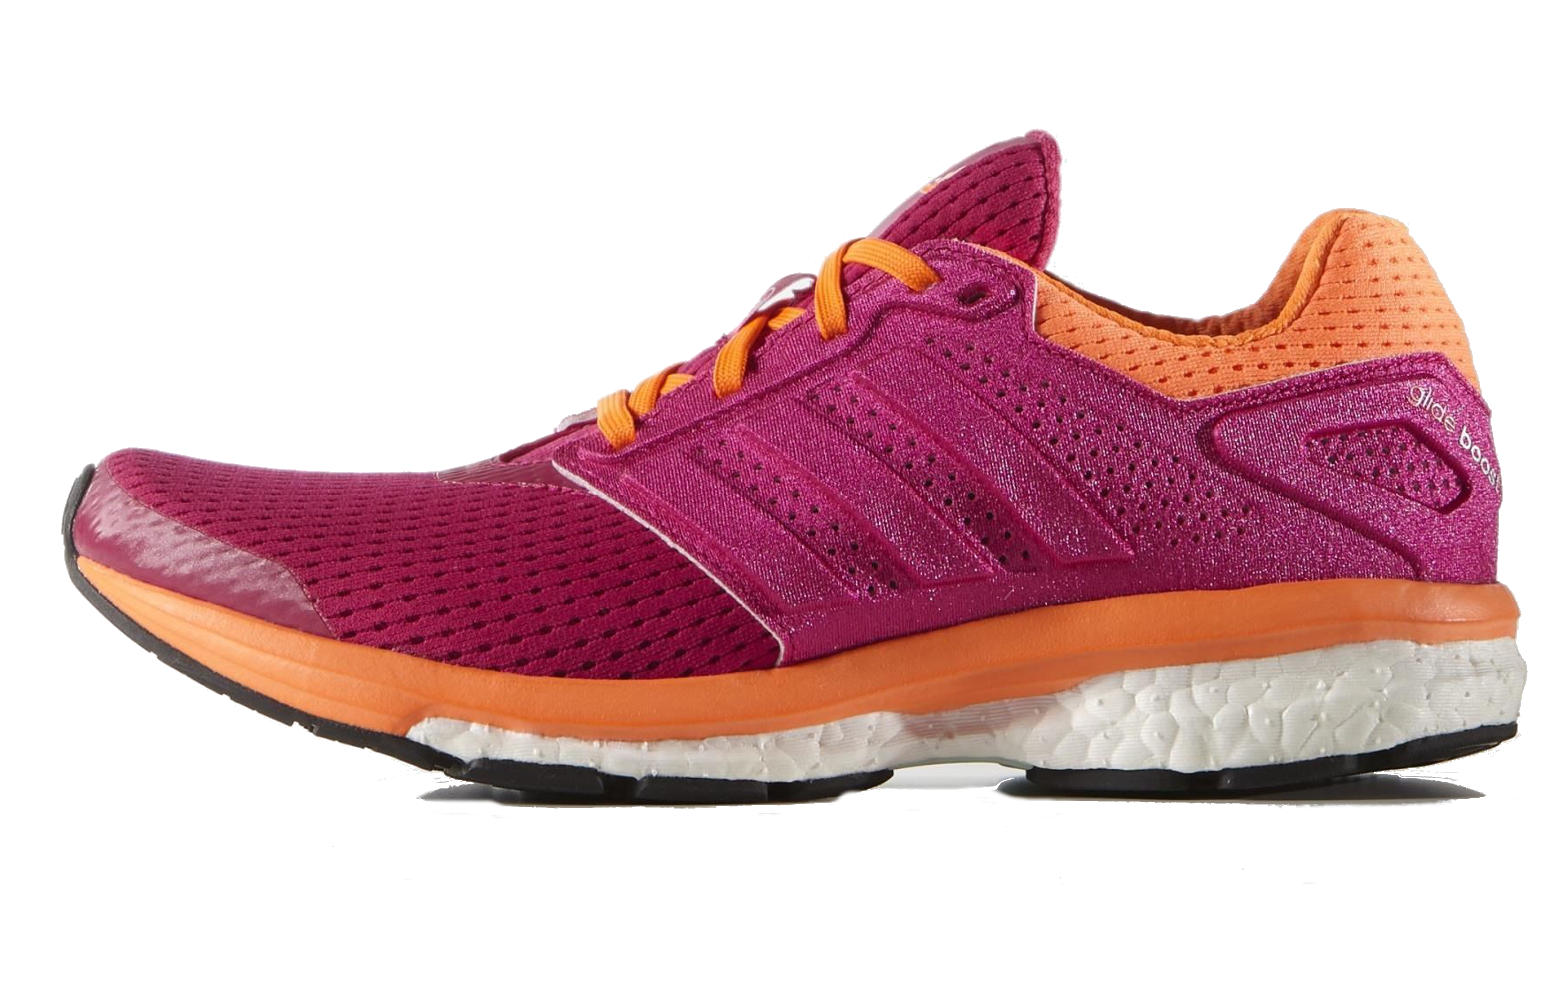 735640769da2c adidas Supernova Glide Boost 7 Womens Running Shoes - Pink Orange ...